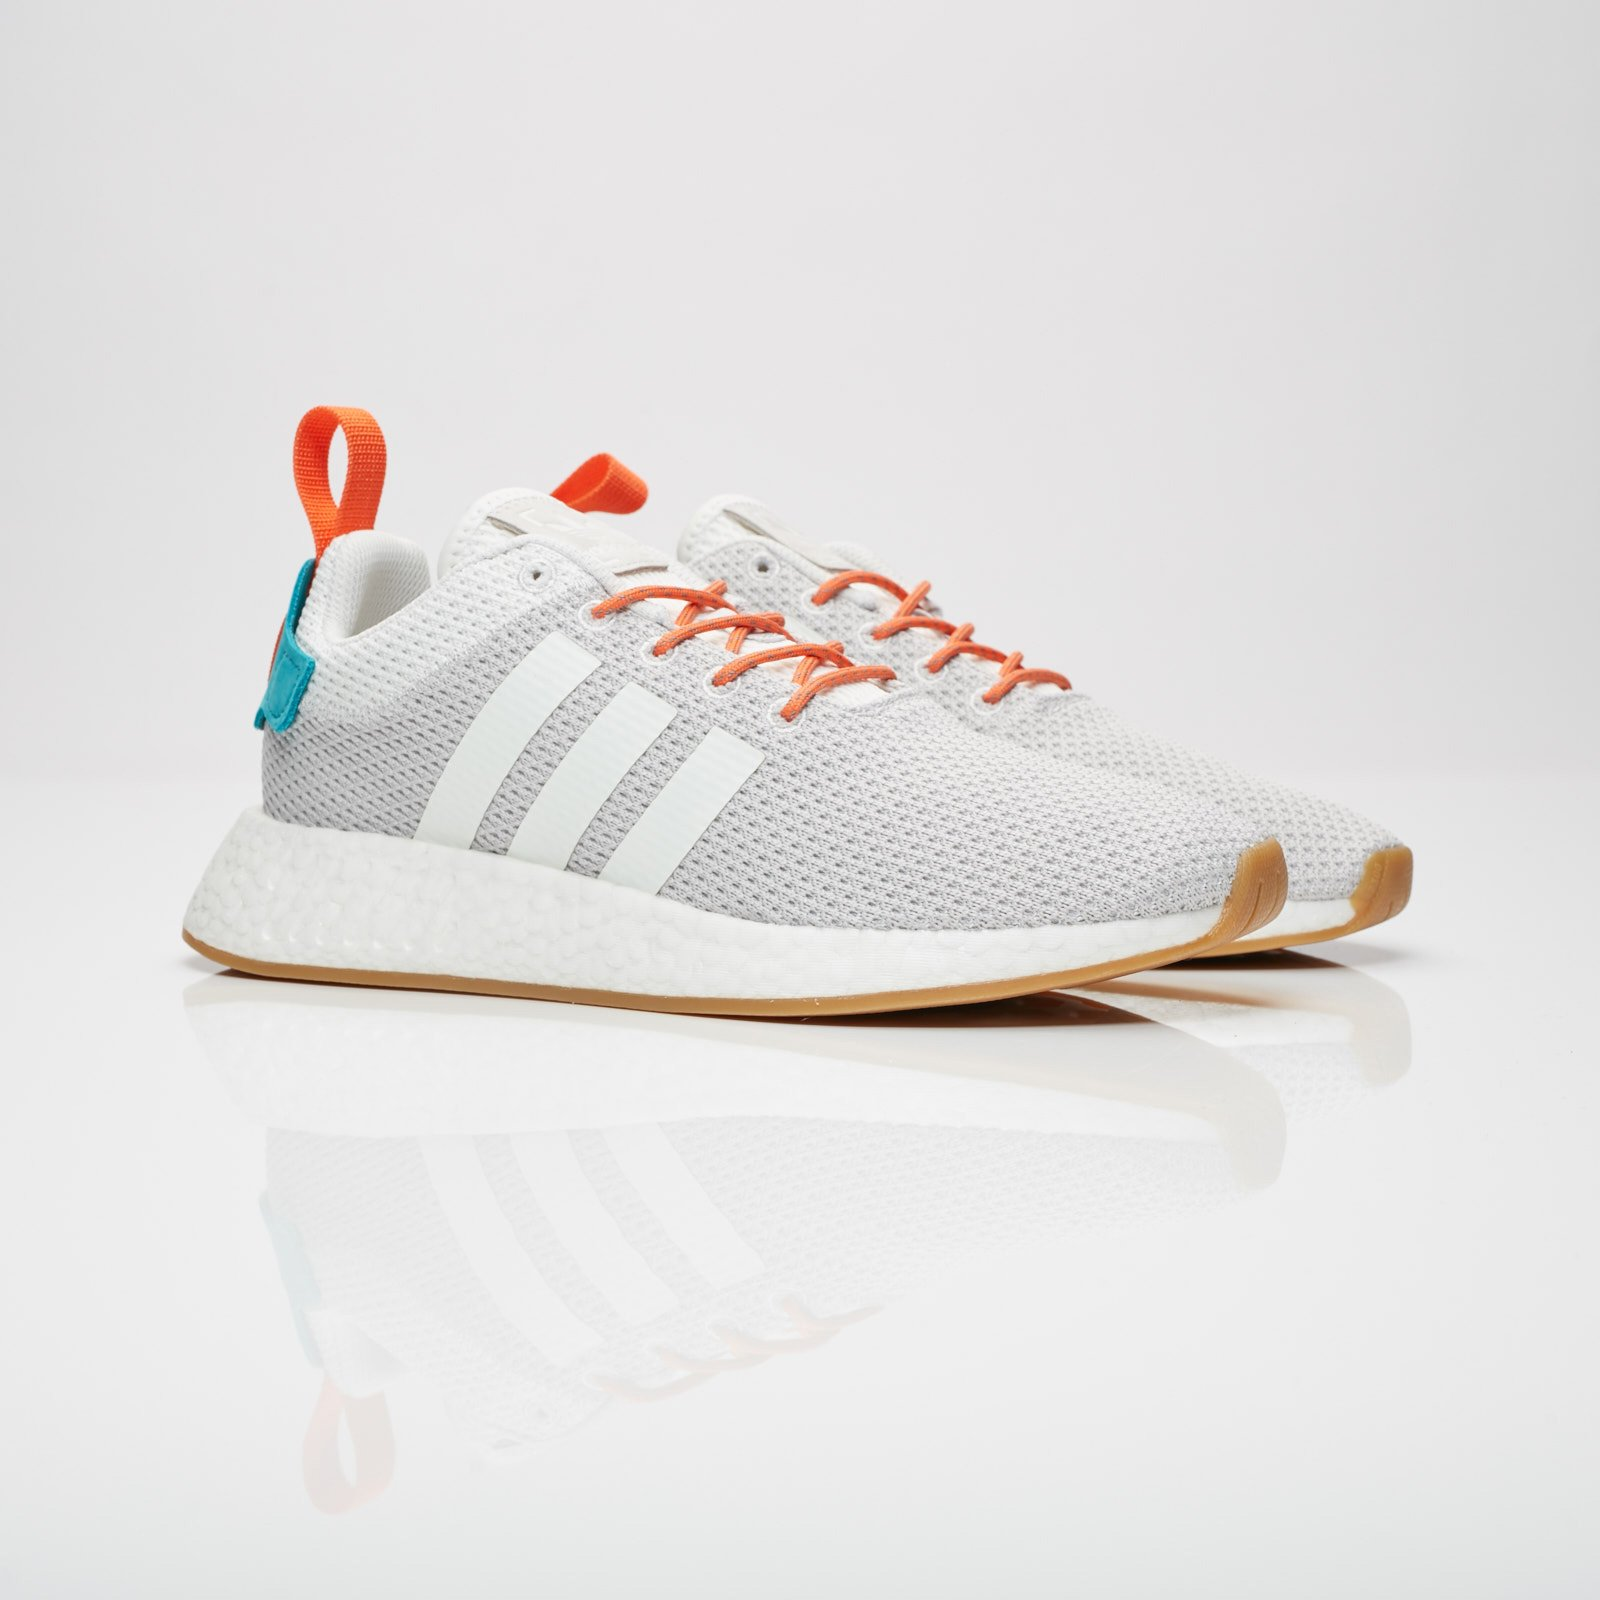 promo code 4ff2c 23f19 adidas NMD R2 Summer - Cq3080 - Sneakersnstuff | sneakers ...